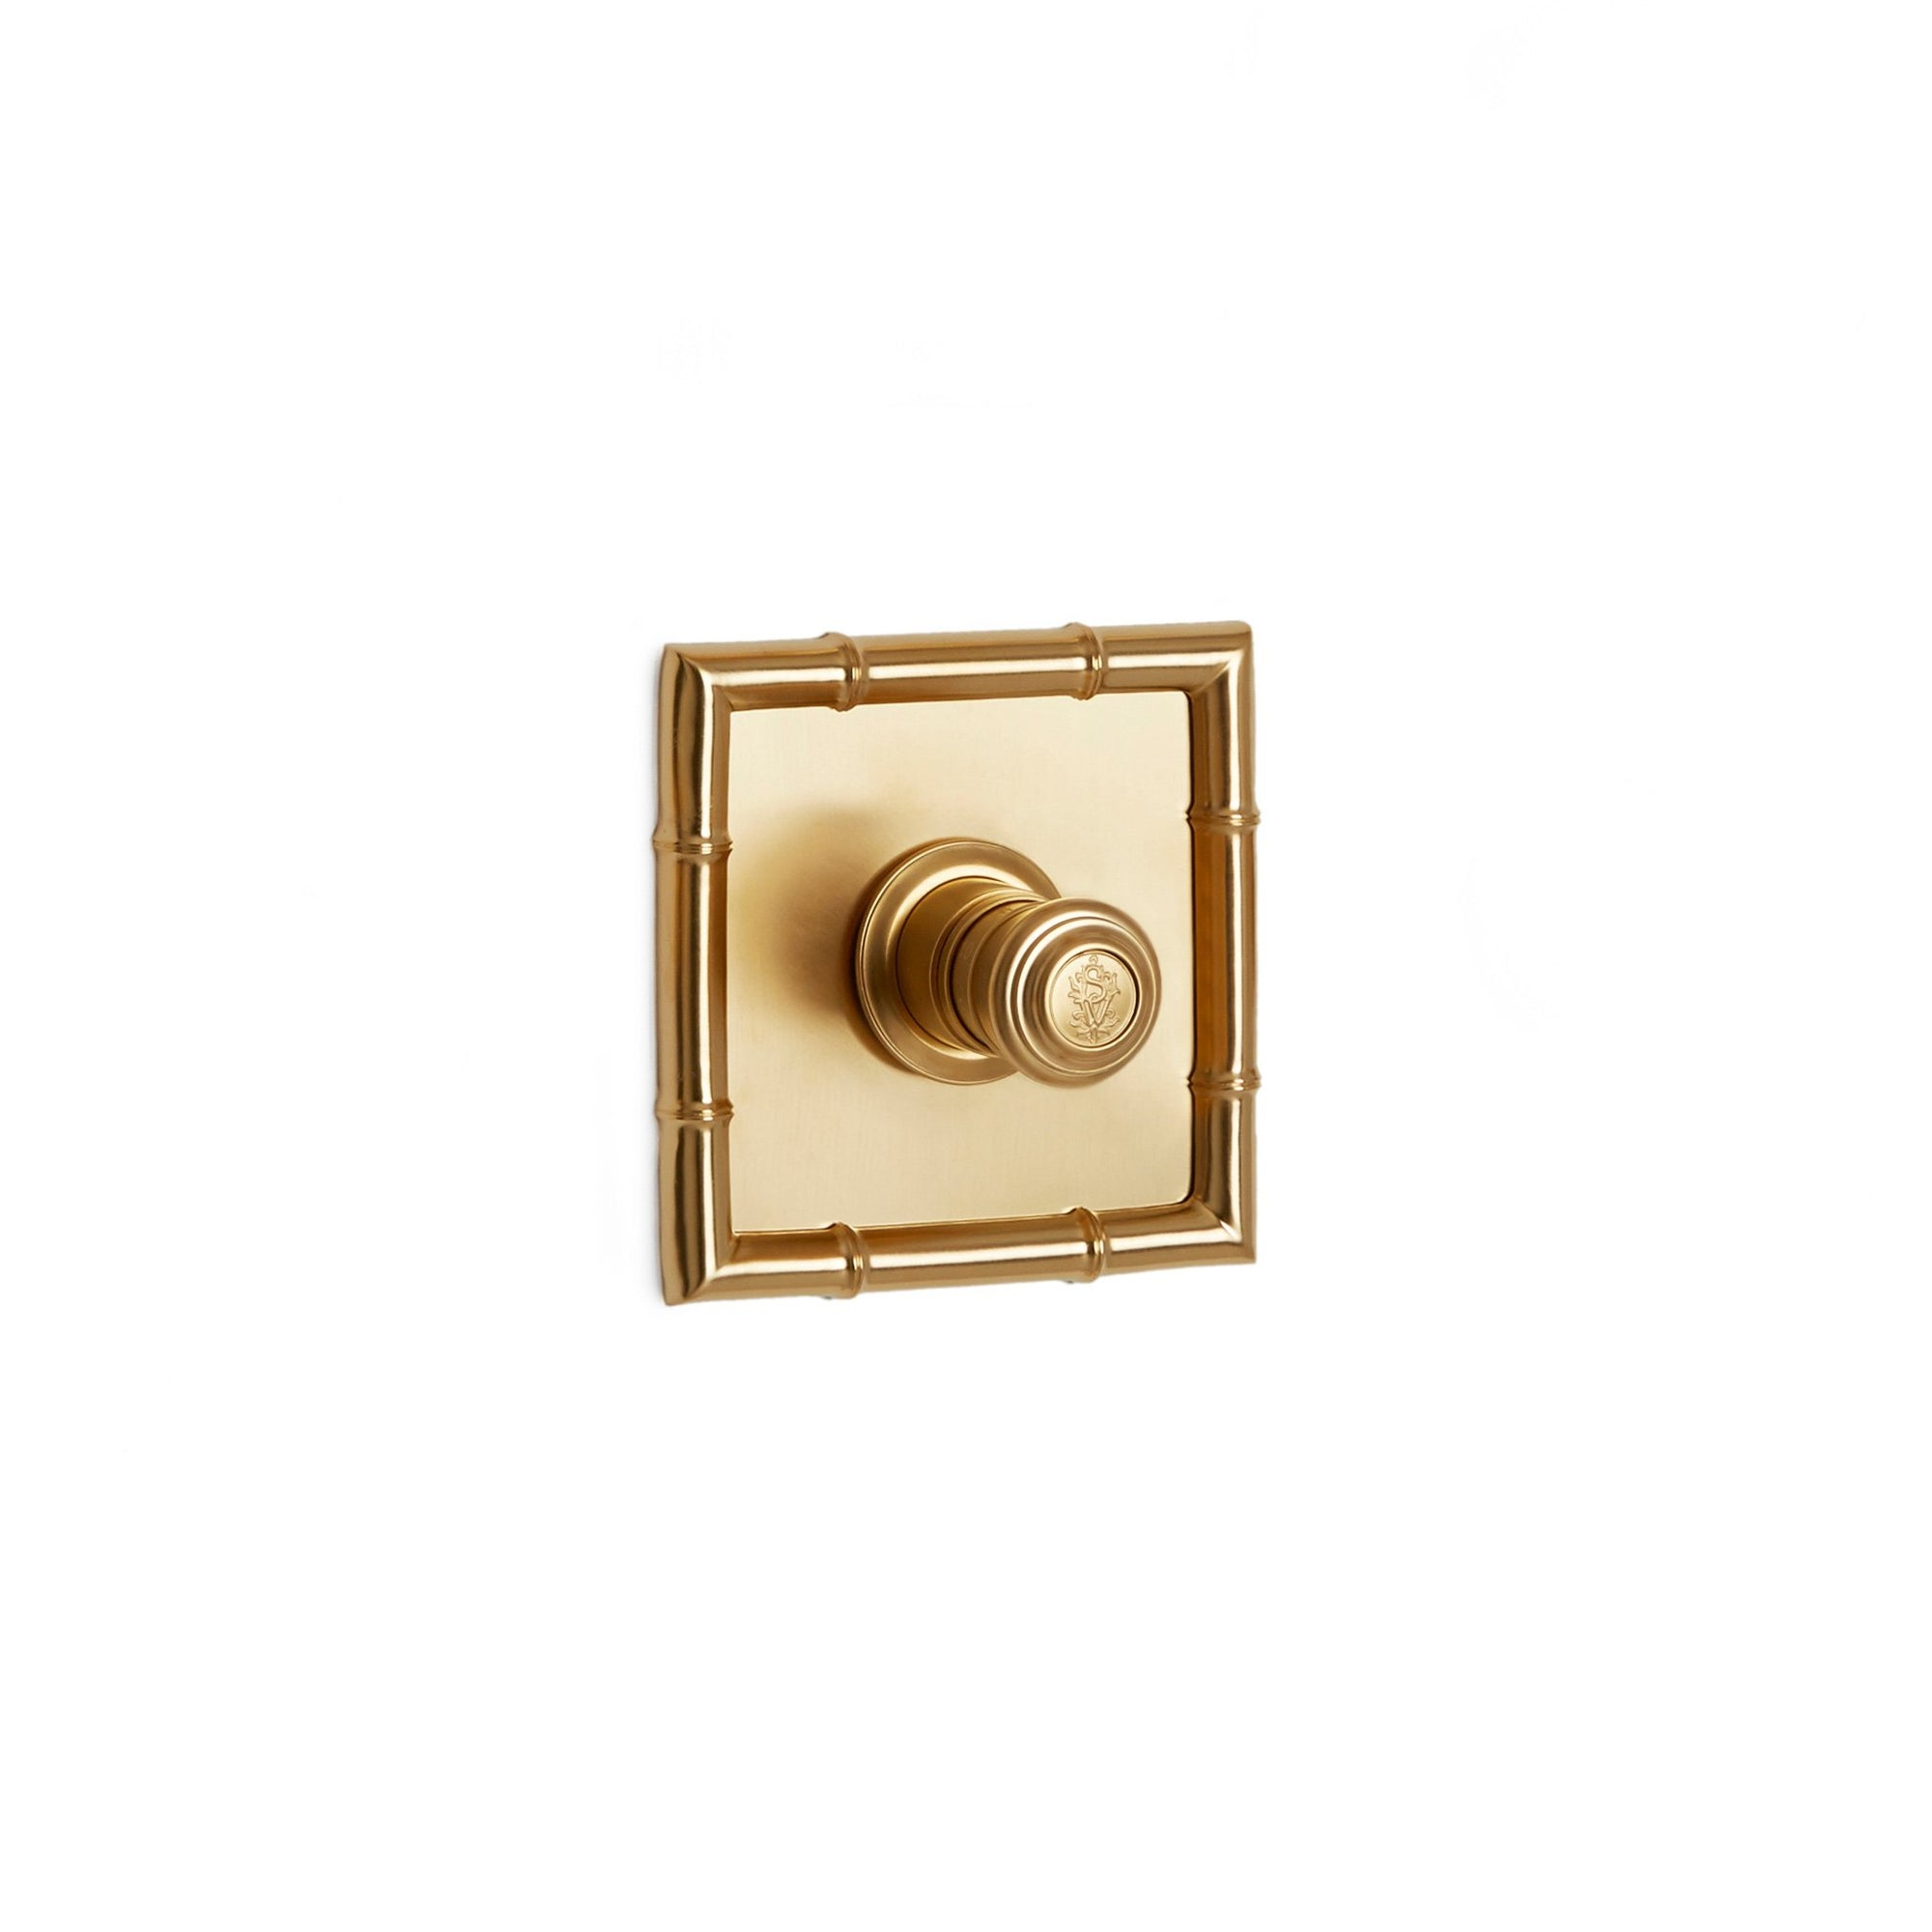 TMO05PL-LOGO-GP Sherle Wagner International Bamboo High Flow Thermostatic Trim in Gold Plate metal finish